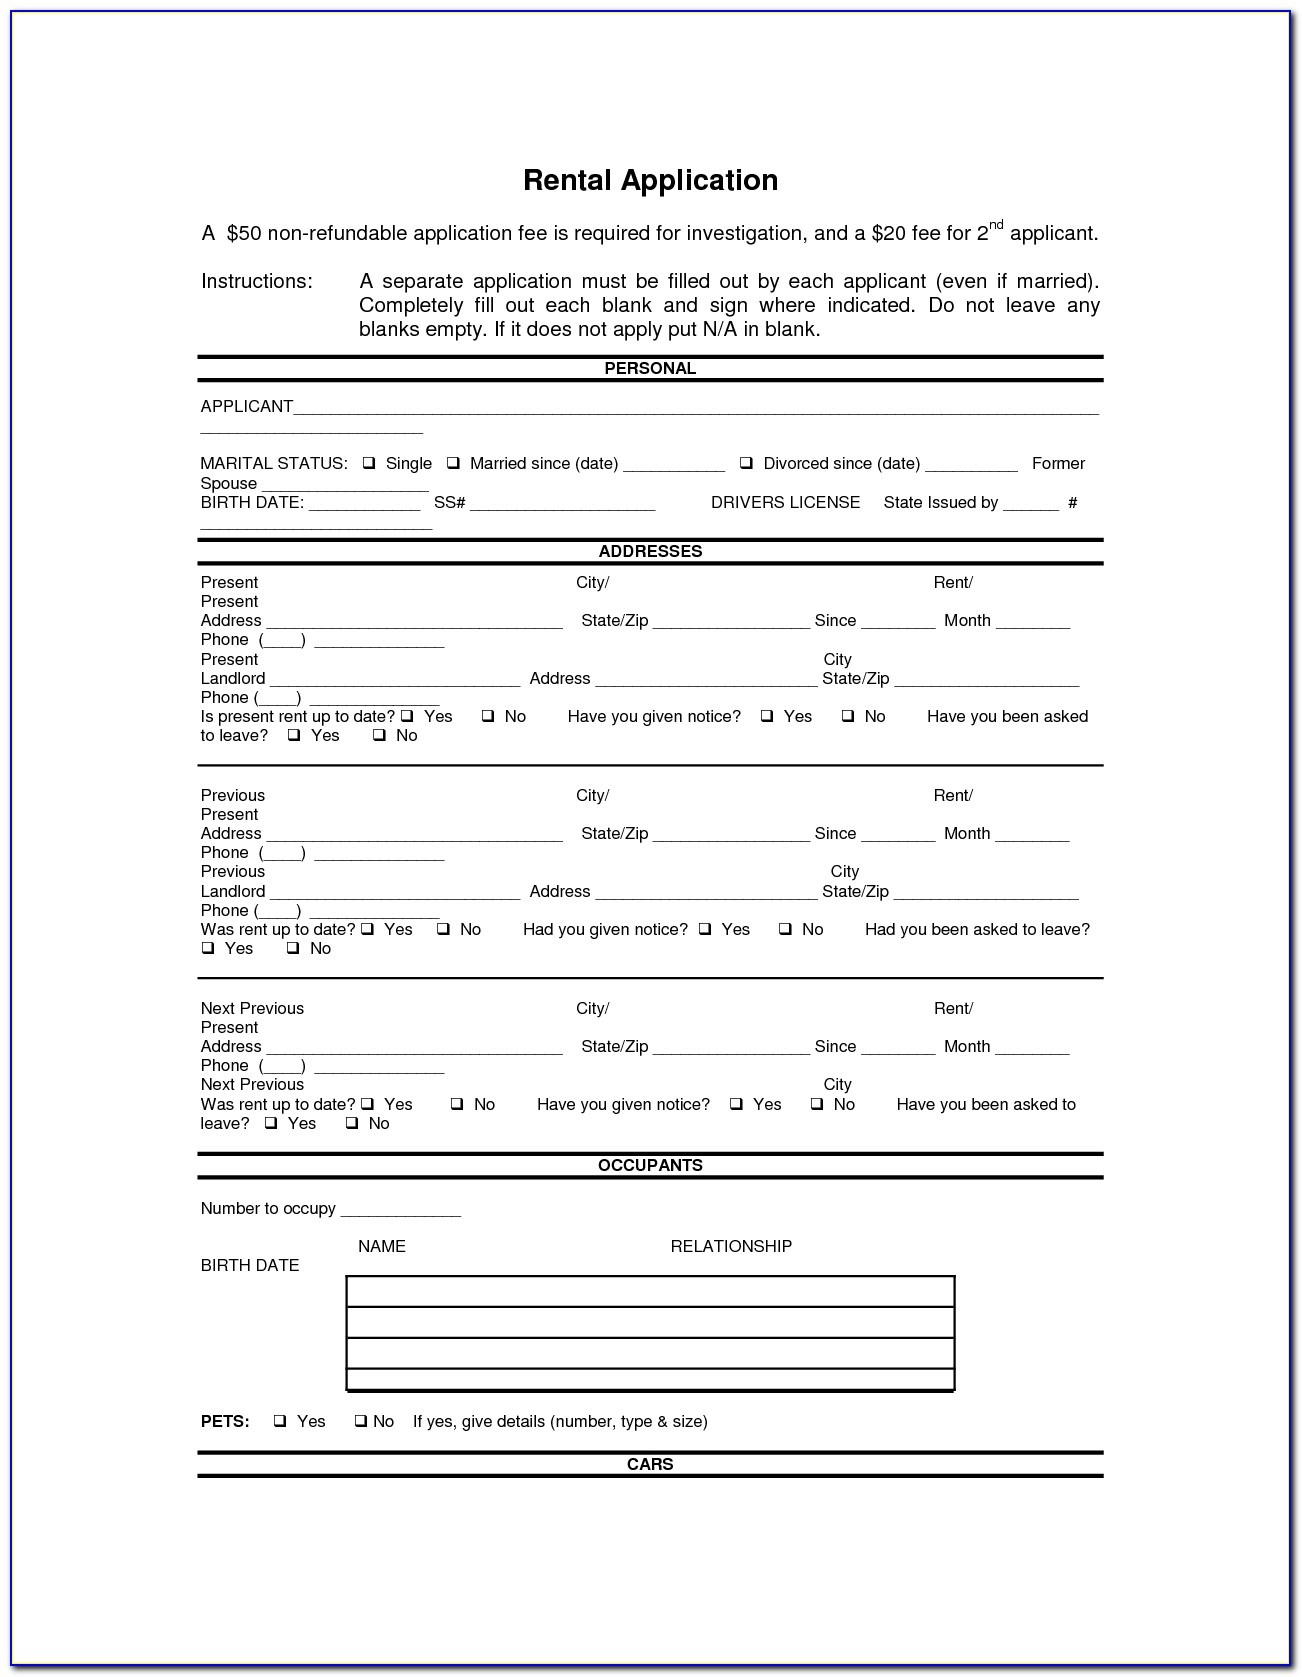 Doc.#592799: Printable Rental Agreement Forms – Free Rental Forms - Free Printable Rental Application